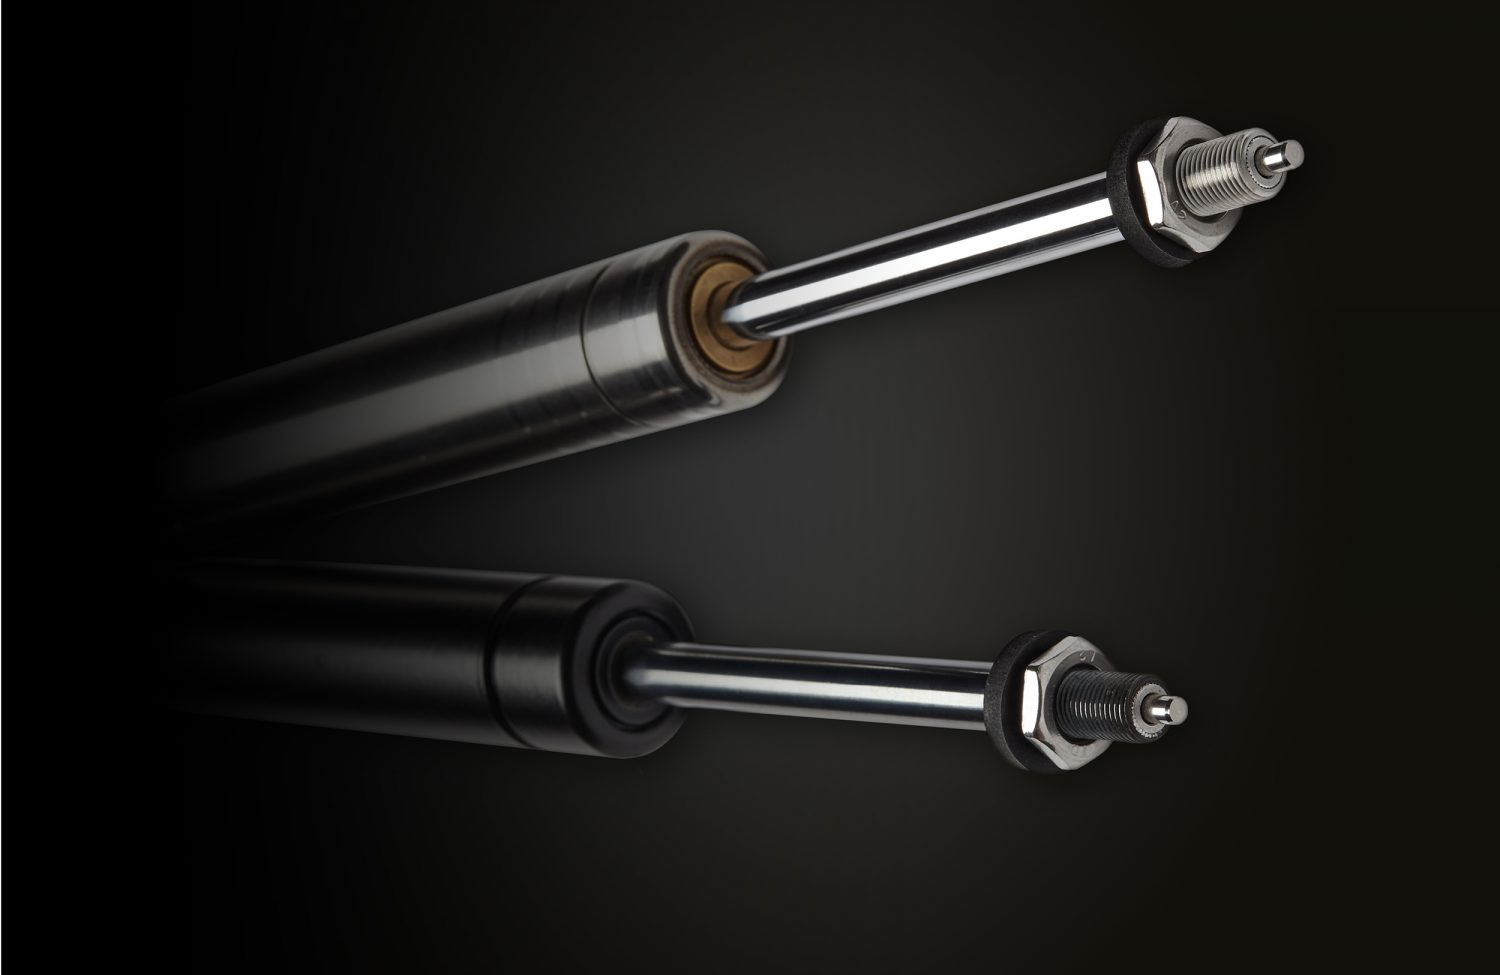 Blocklift gas struts at an angle made from stainless steel or carbon